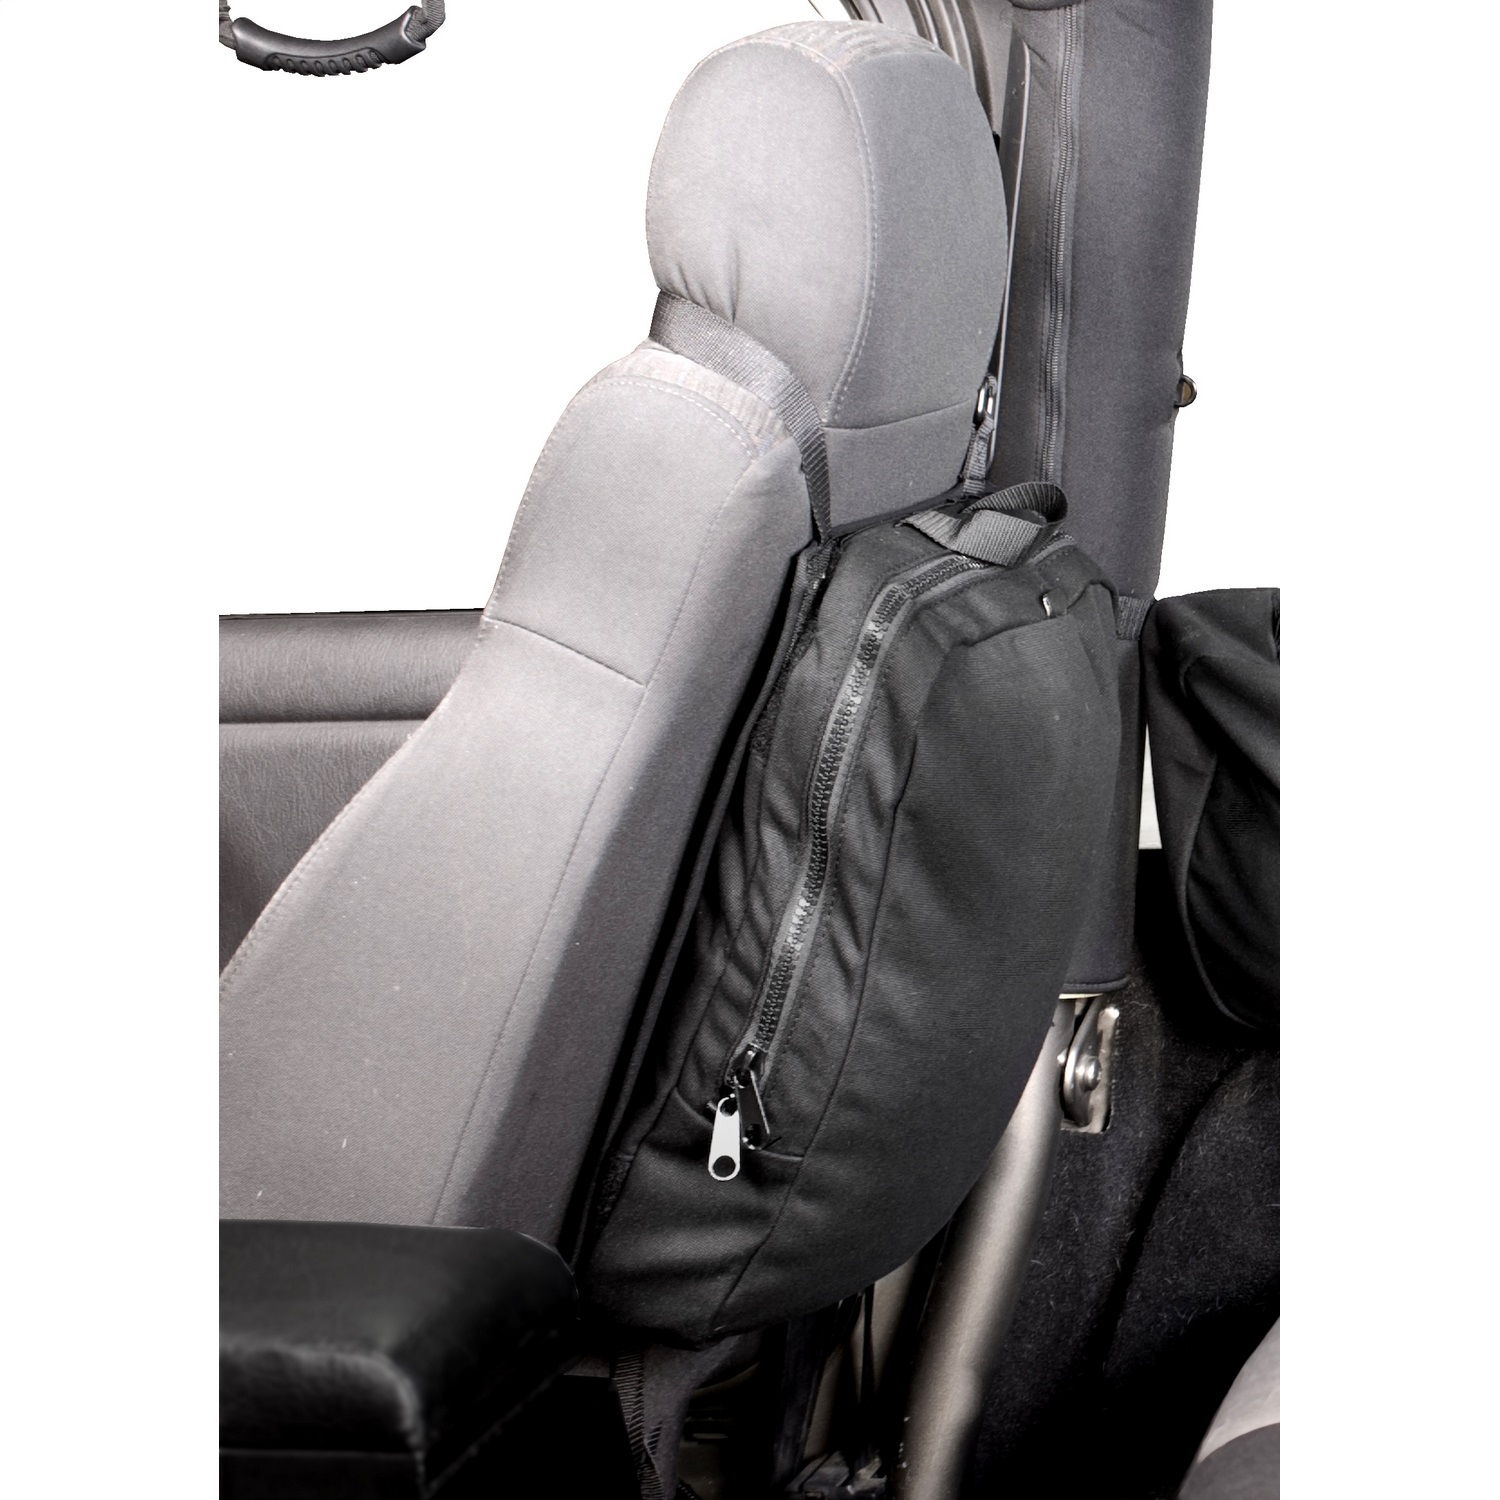 Rugged Ridge Cargo Holder